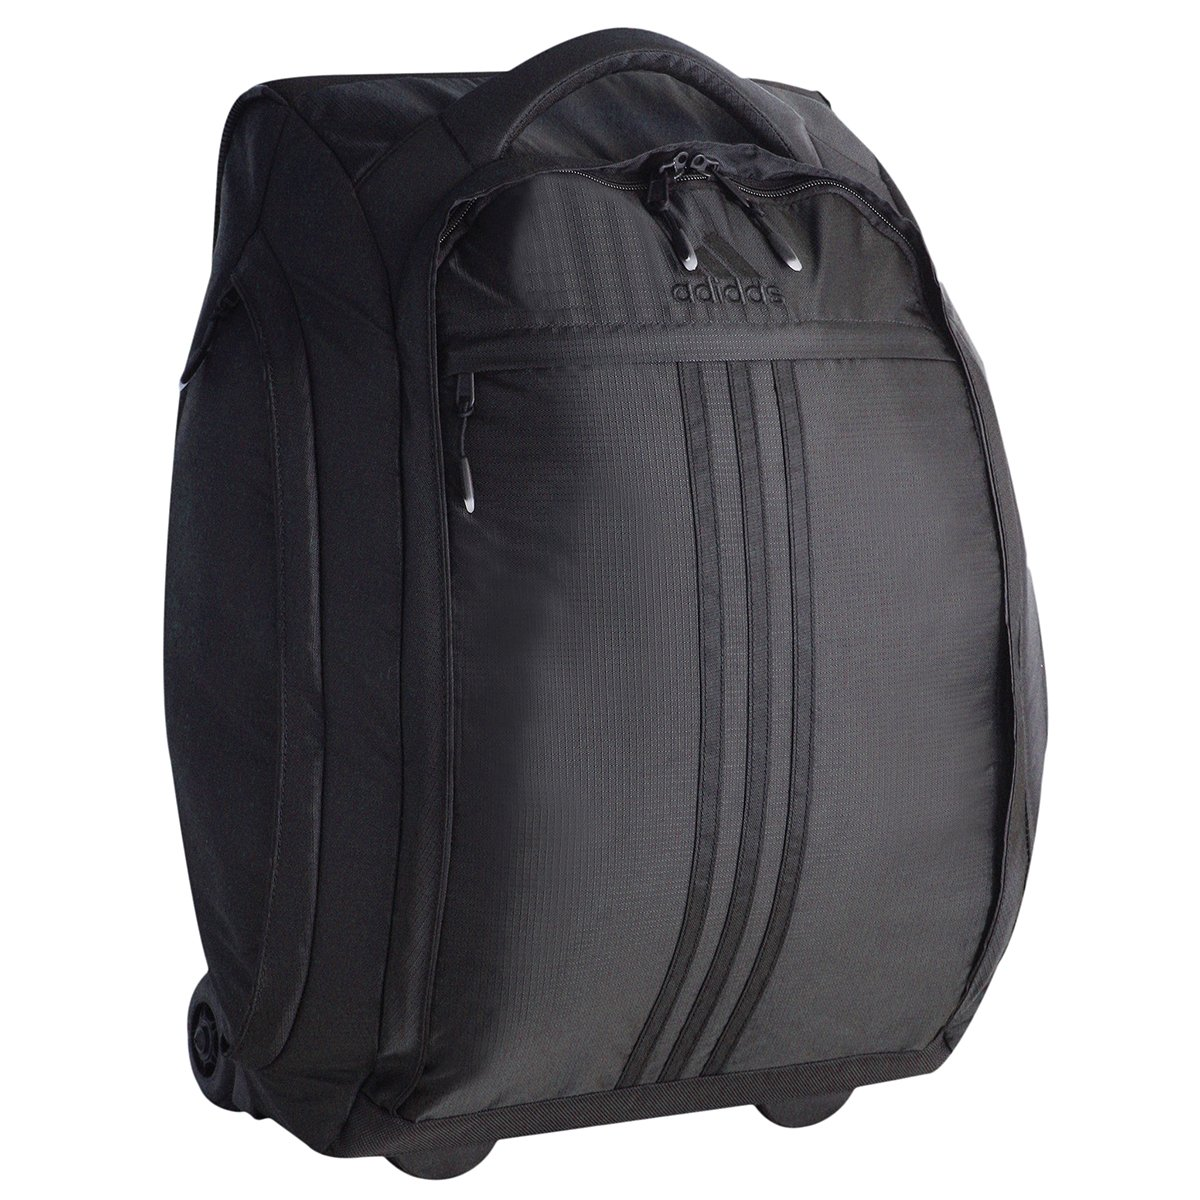 adidas Duel 21-Inch Wheel Bag, Black, One Size by adidas (Image #1)